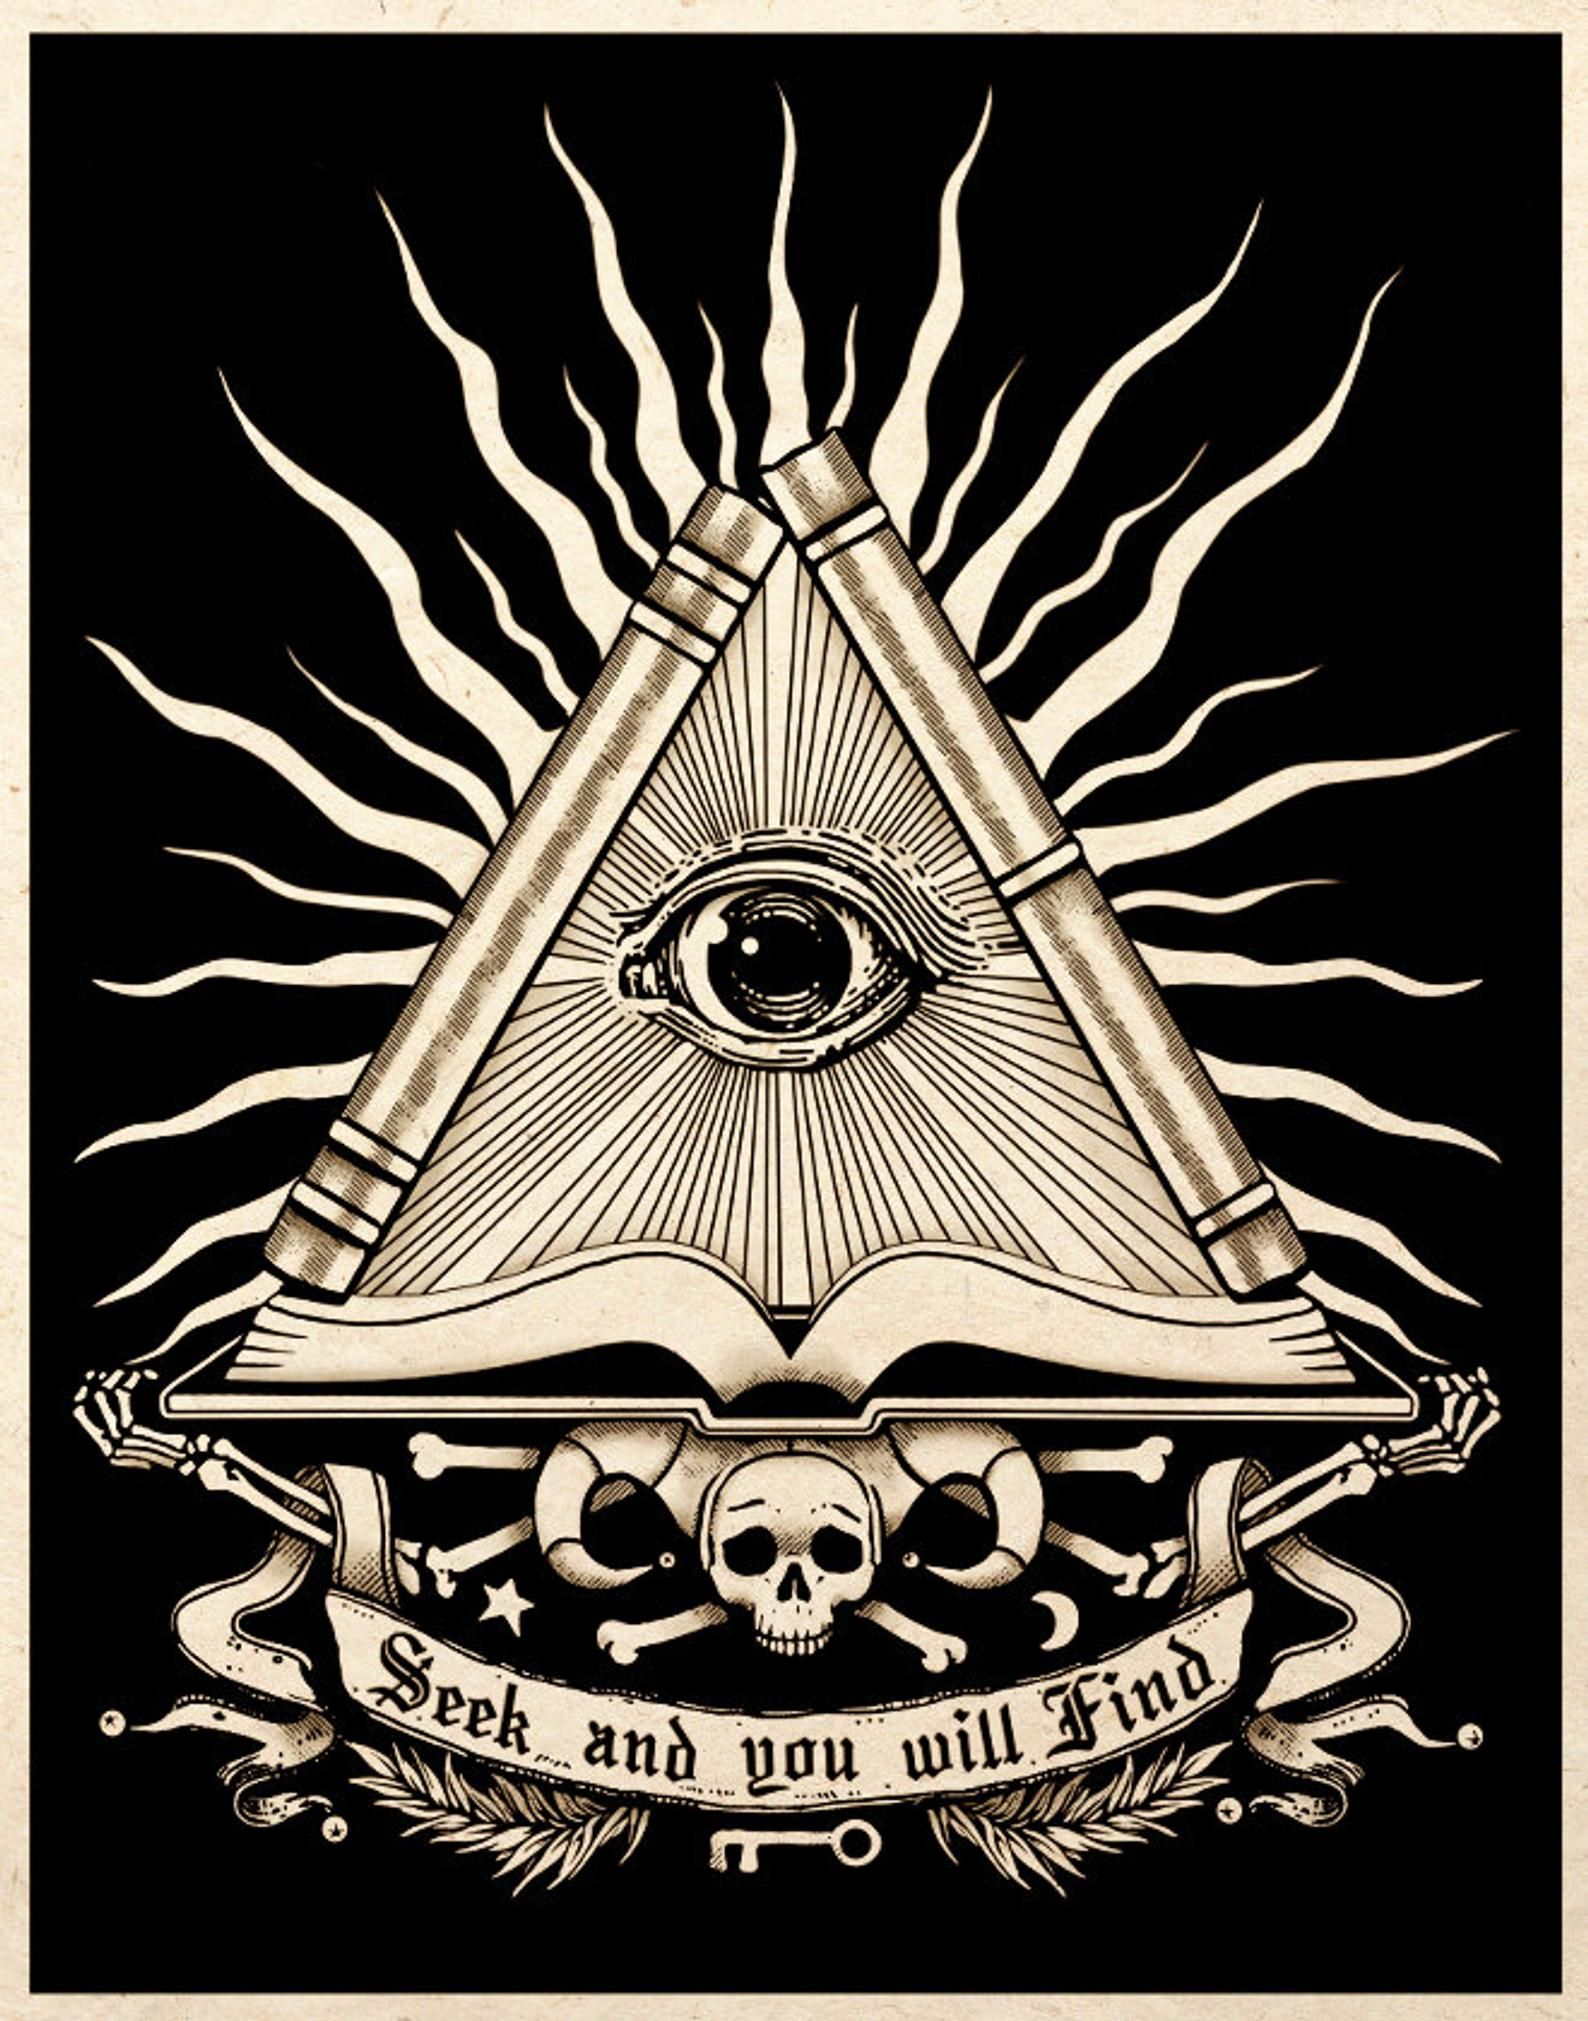 All Seeing Eye Esoteric Alchemy Art Print Gothic Macabre